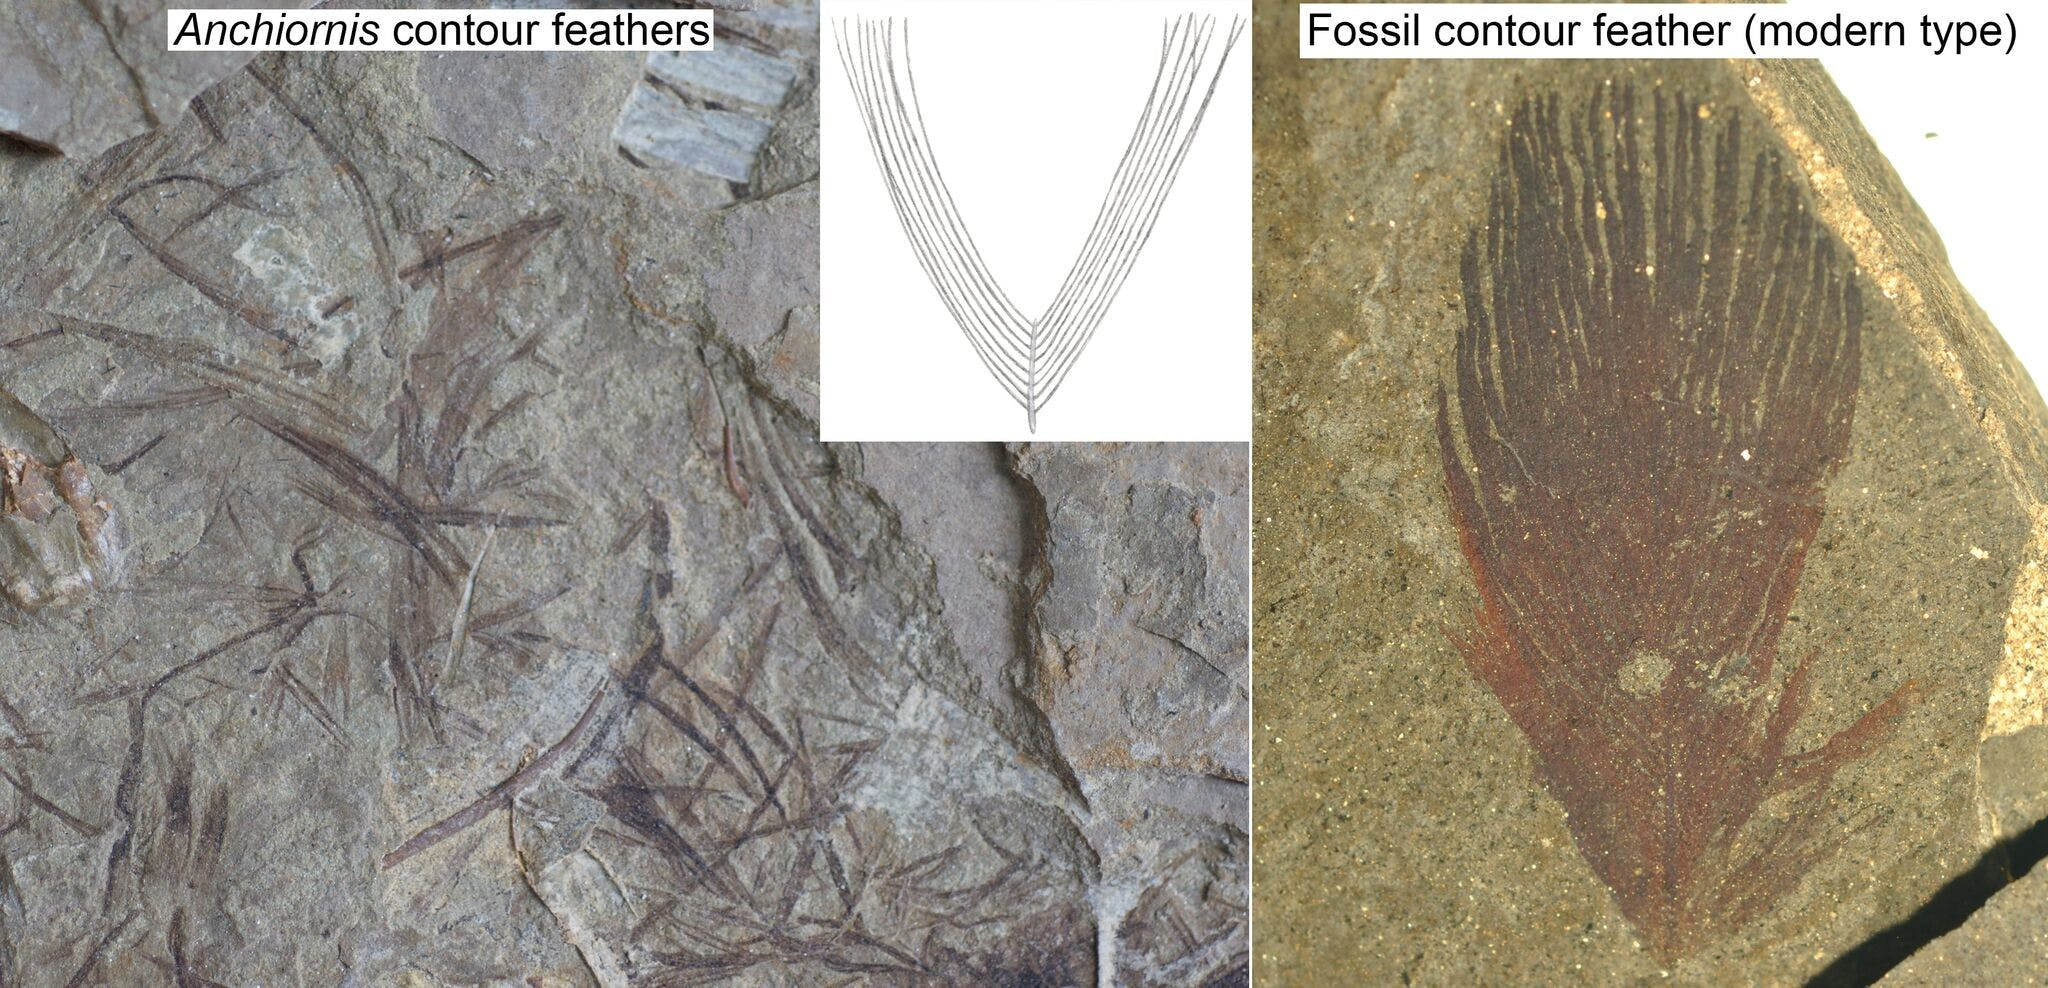 anchiornis fAnchiornis had feathers whose barbs didn't zip together like modern birds' feathers.